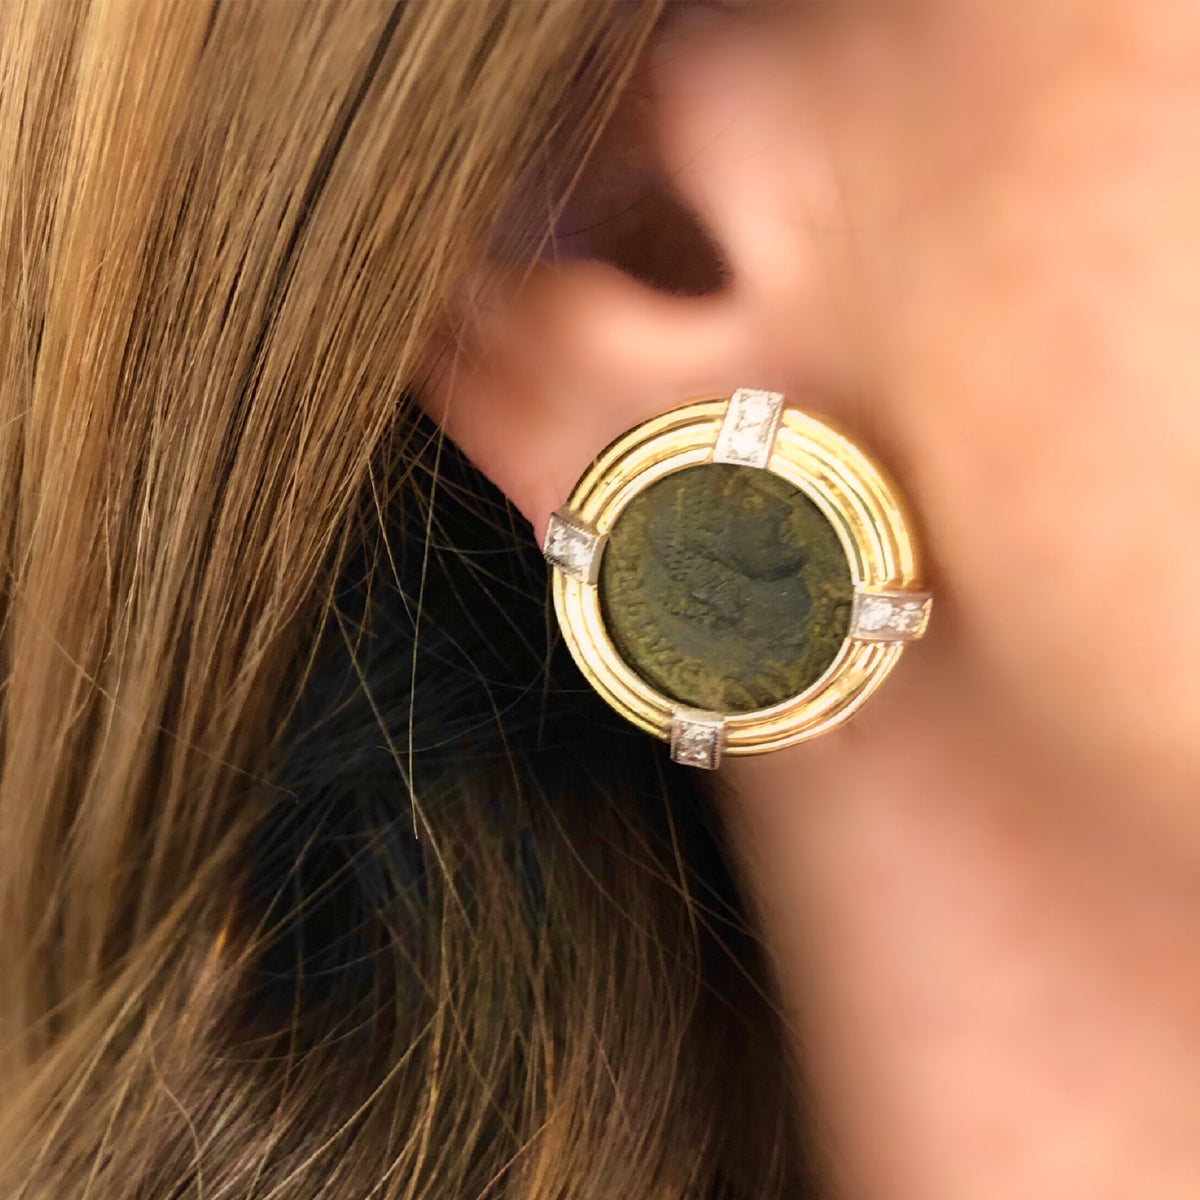 Ancient Roman Coin Clip On Earrings with Diamond Accents in 18k model view